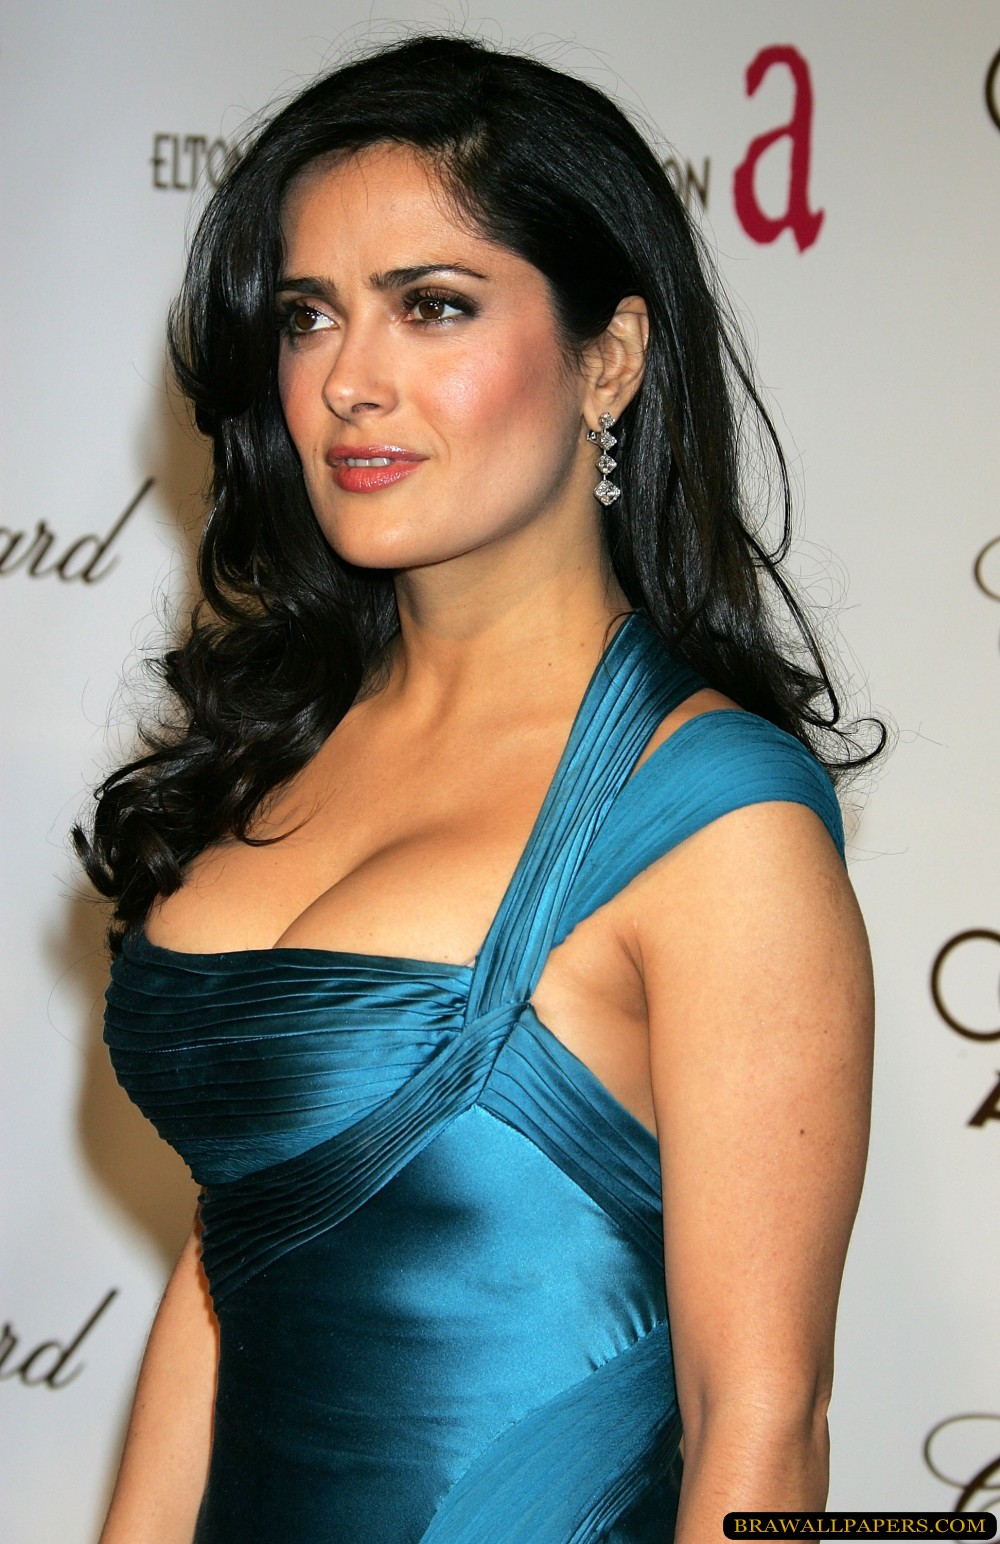 Salma Hayek Hd Wallpapers High Definition Free